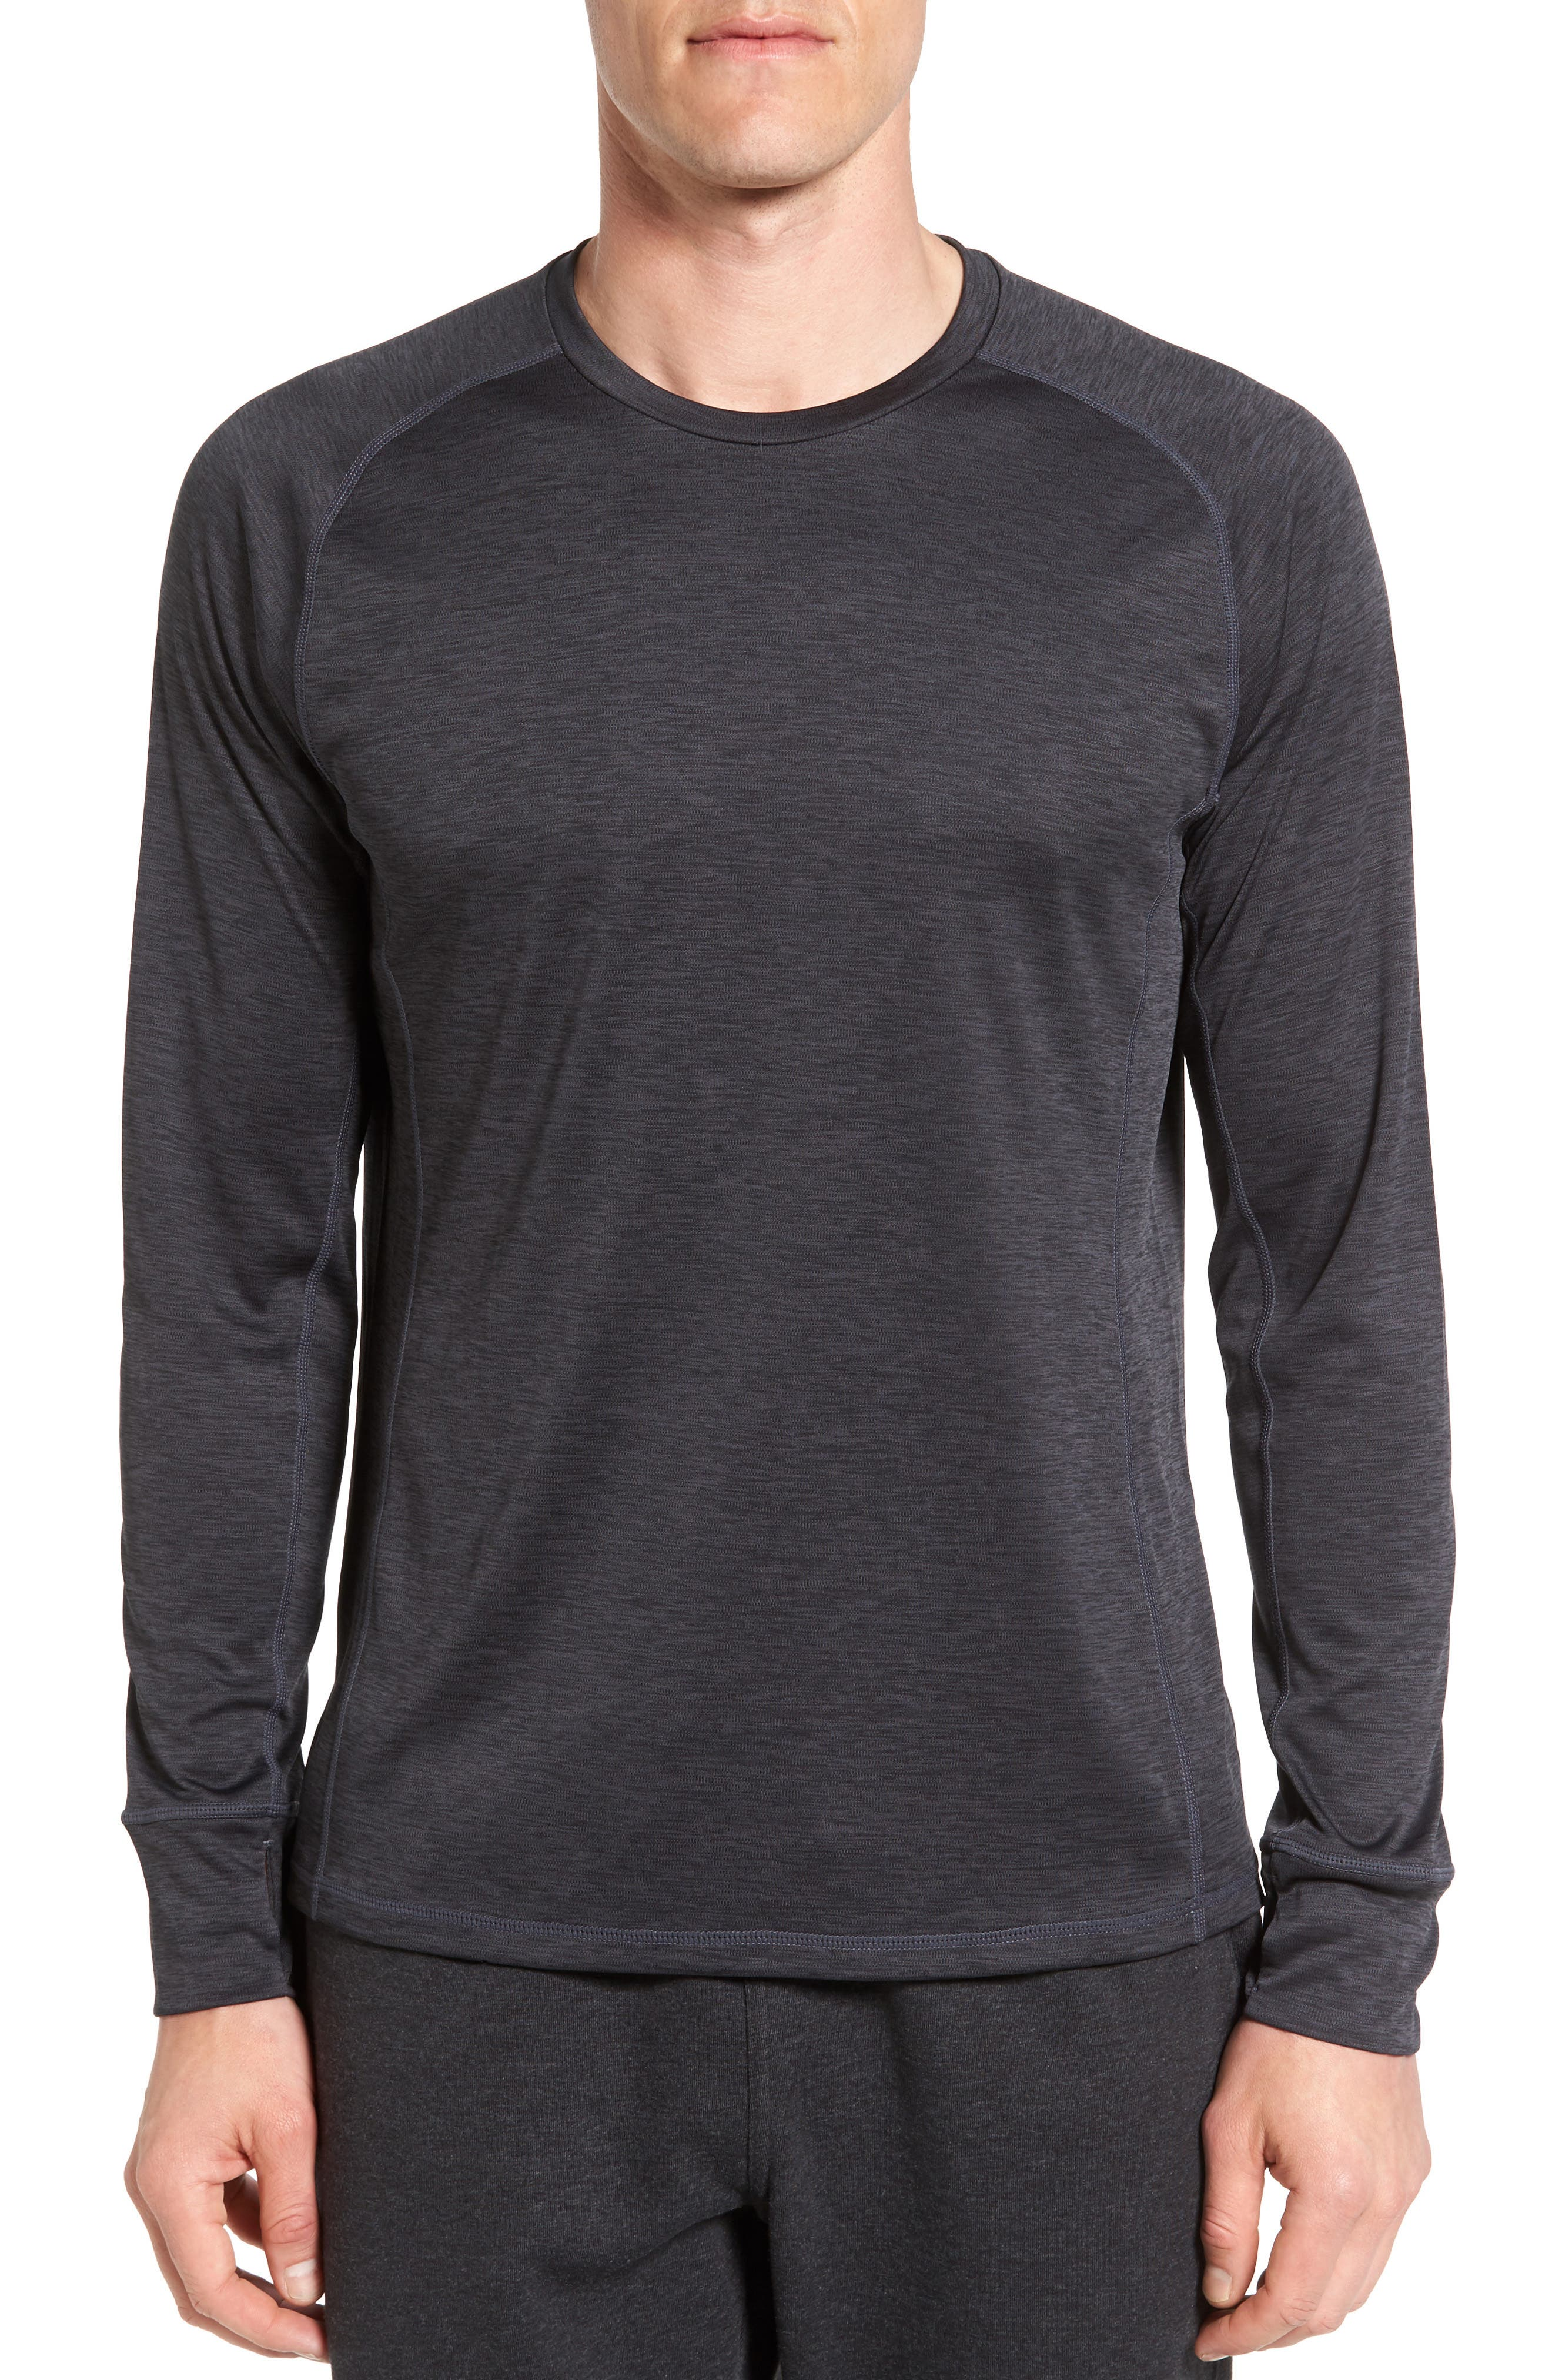 Zella Triplite Long Sleeve T-Shirt